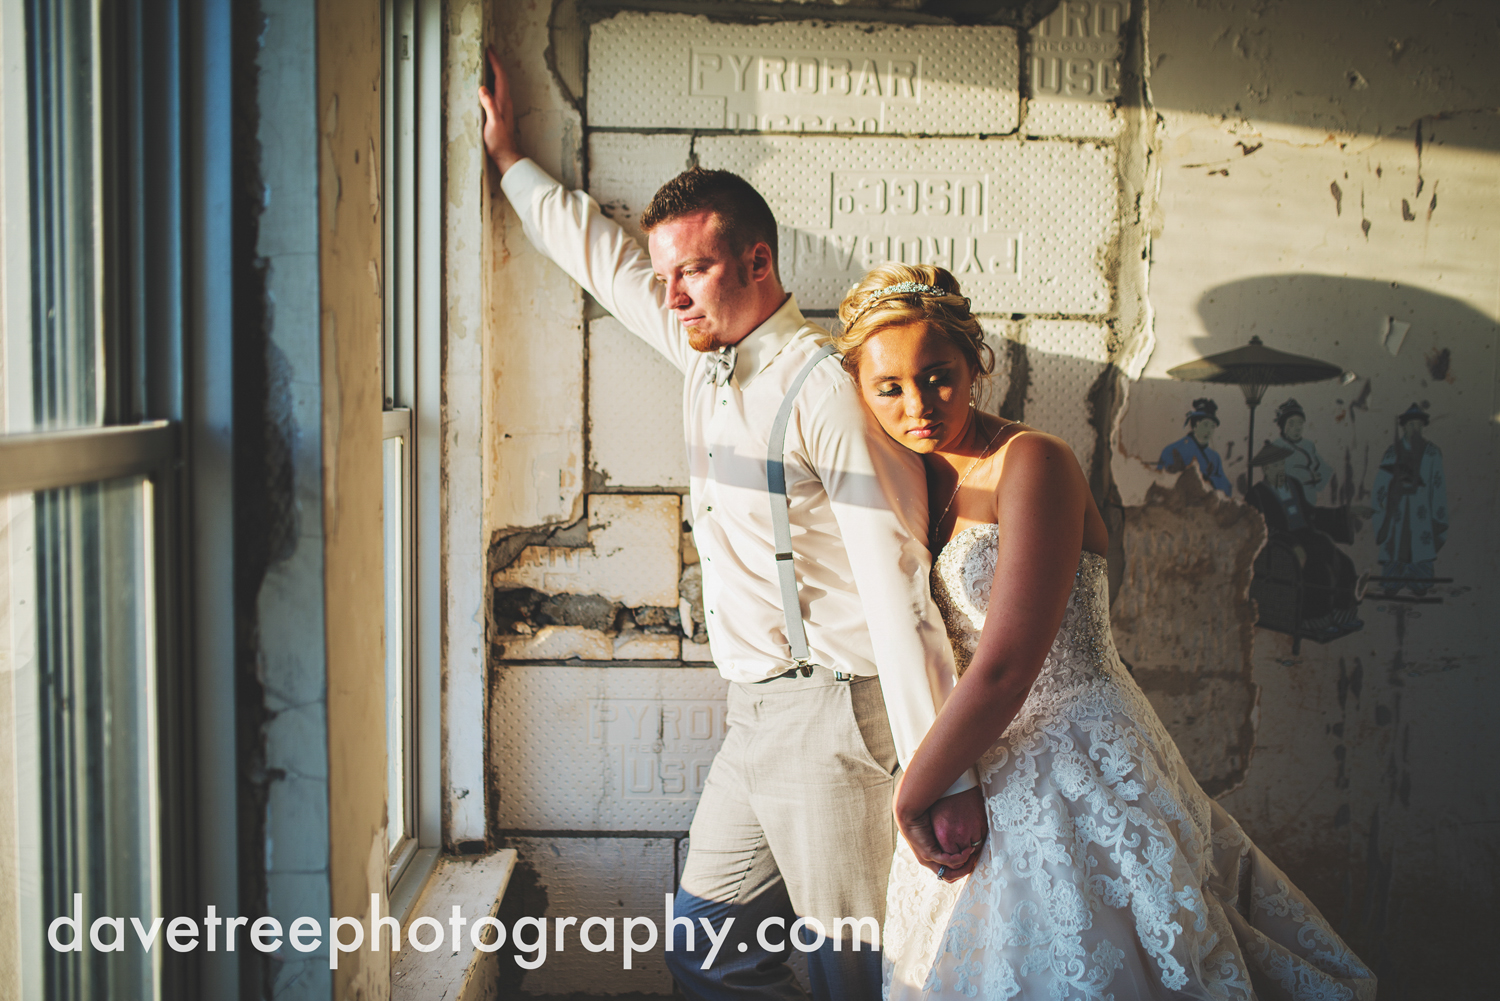 veranda_wedding_photographer_st_joseph_wedding_18.jpg